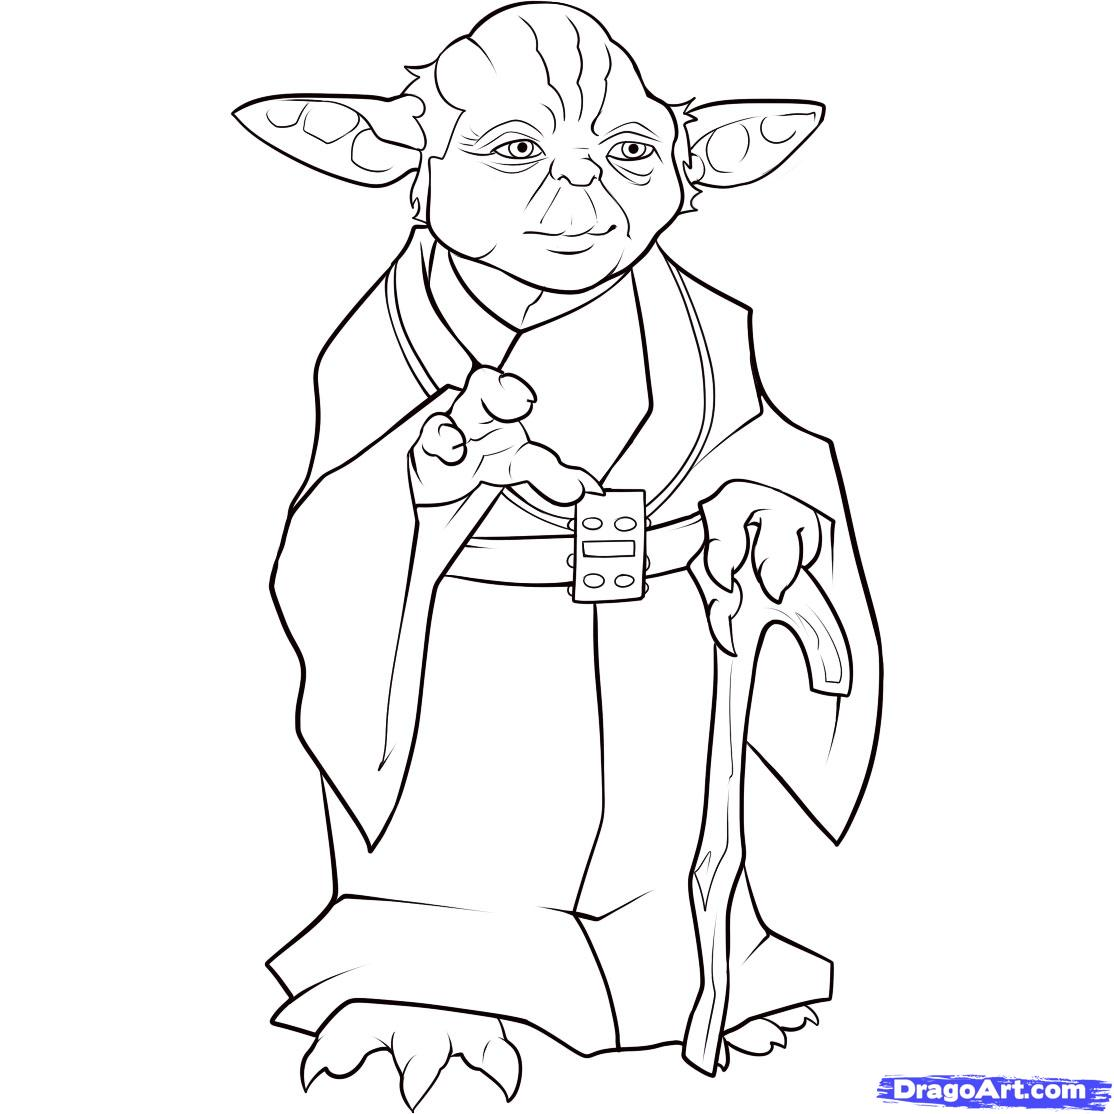 1114x1114 Star Wars Printable Coloring Pages For Boys That Fill Up The Whole